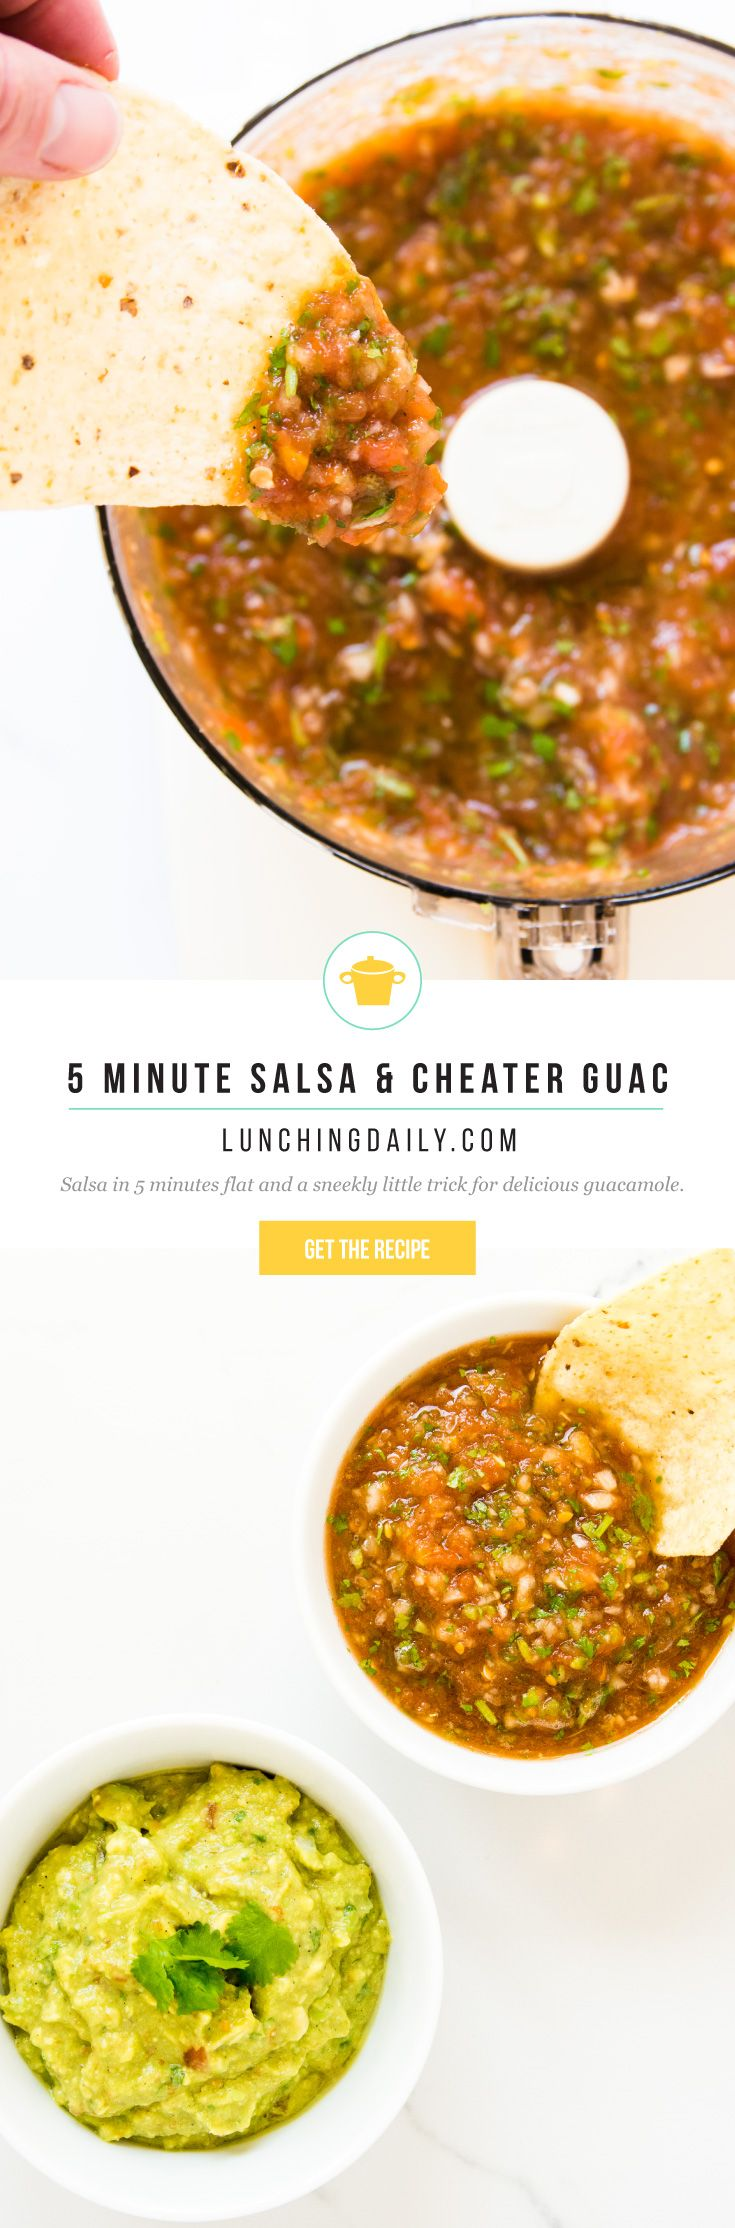 5 Minute Salsa and Cheater Guacamole - this easy salsa and guacamole recipe can be whipped up in no time using a handful of ingredients and a food processor. So delicious, fresh and easy, you'll never go back to store bought again.